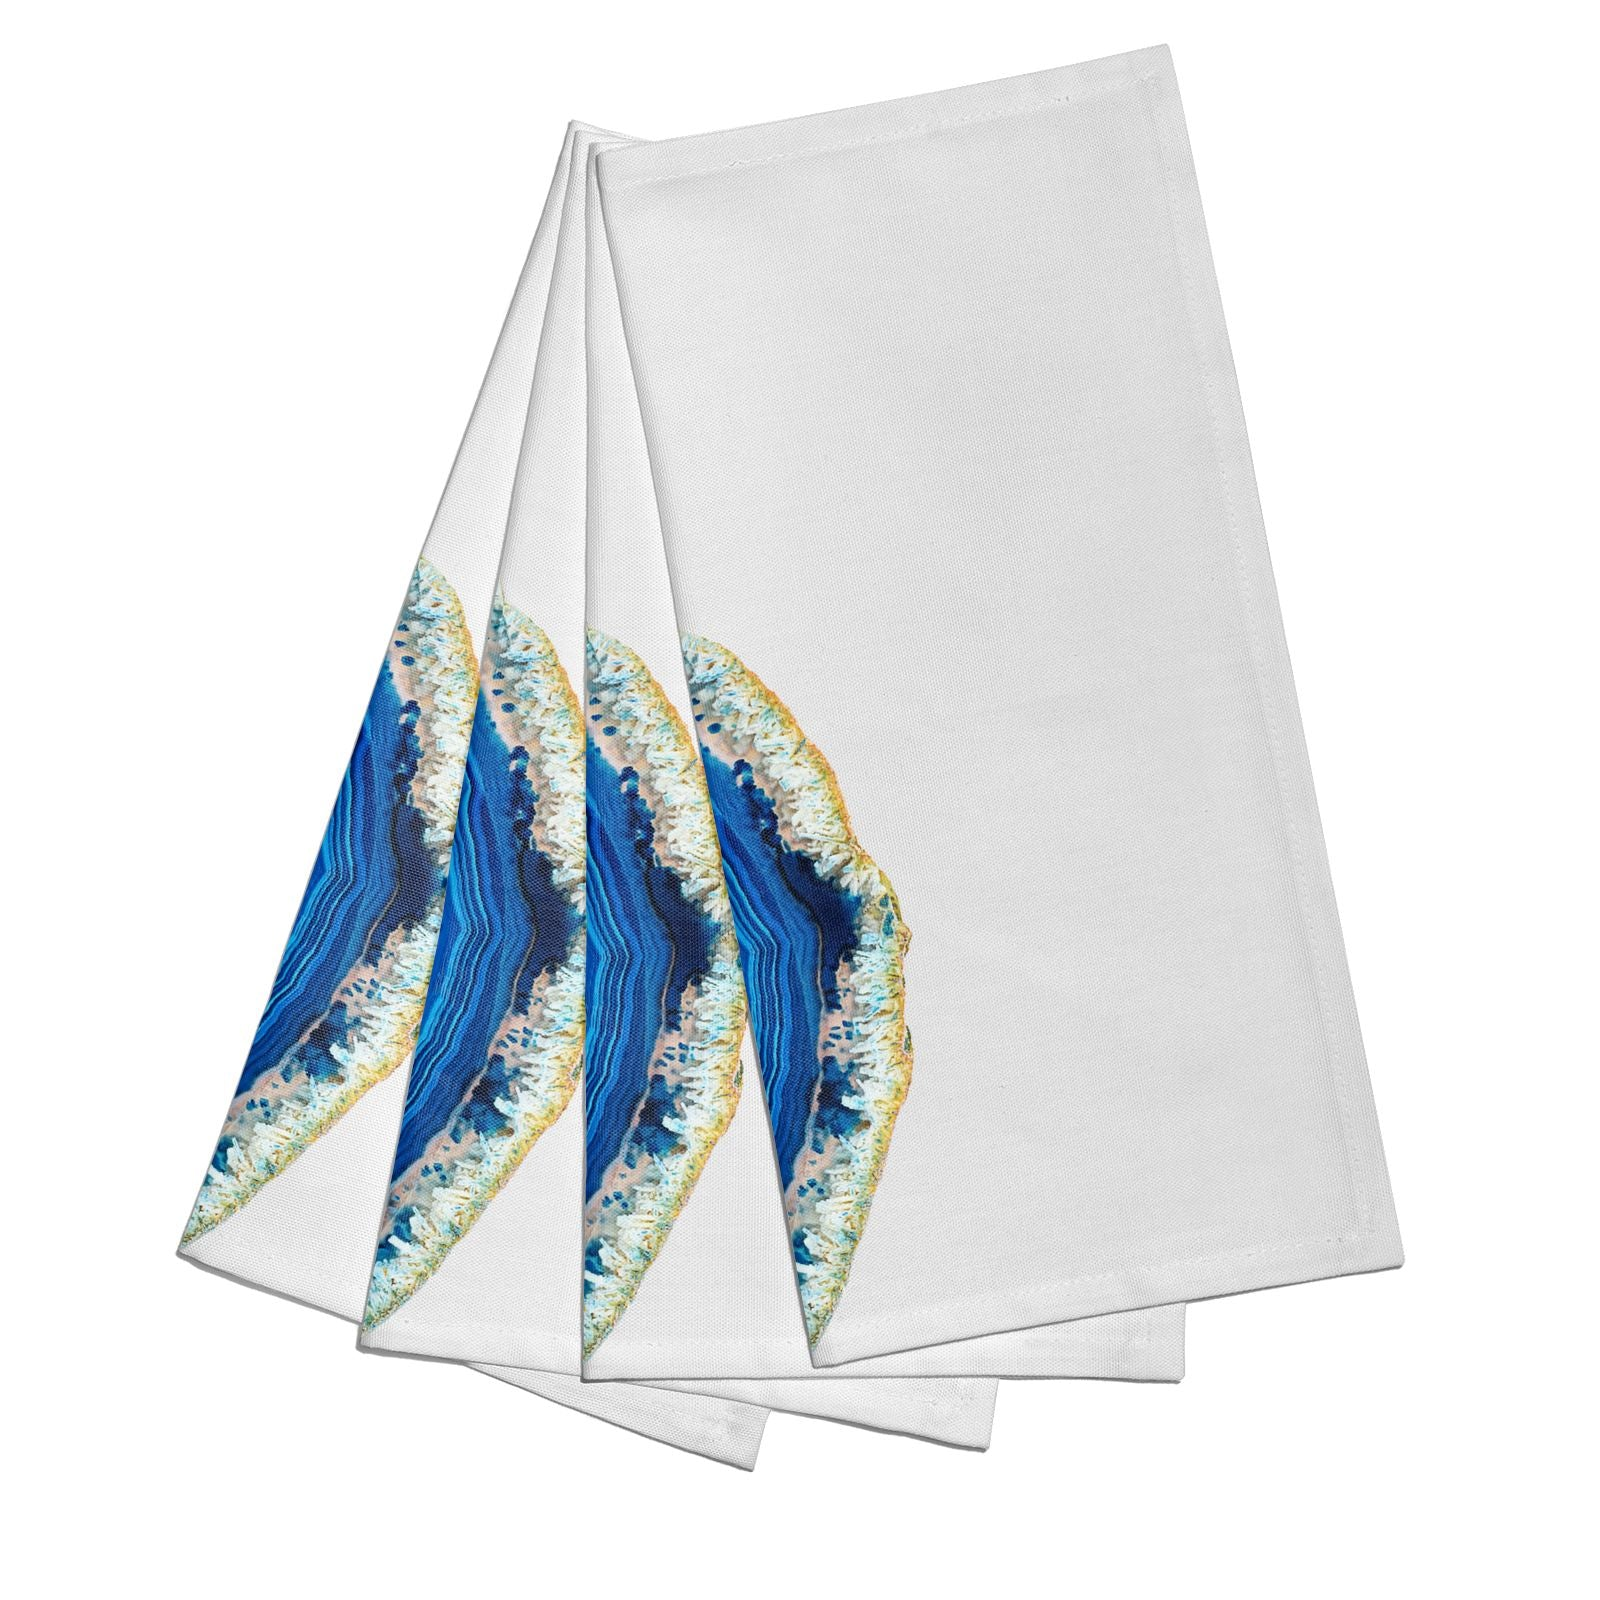 Agate Dark Blue and Turquoise Cotton Napkins Set of 4